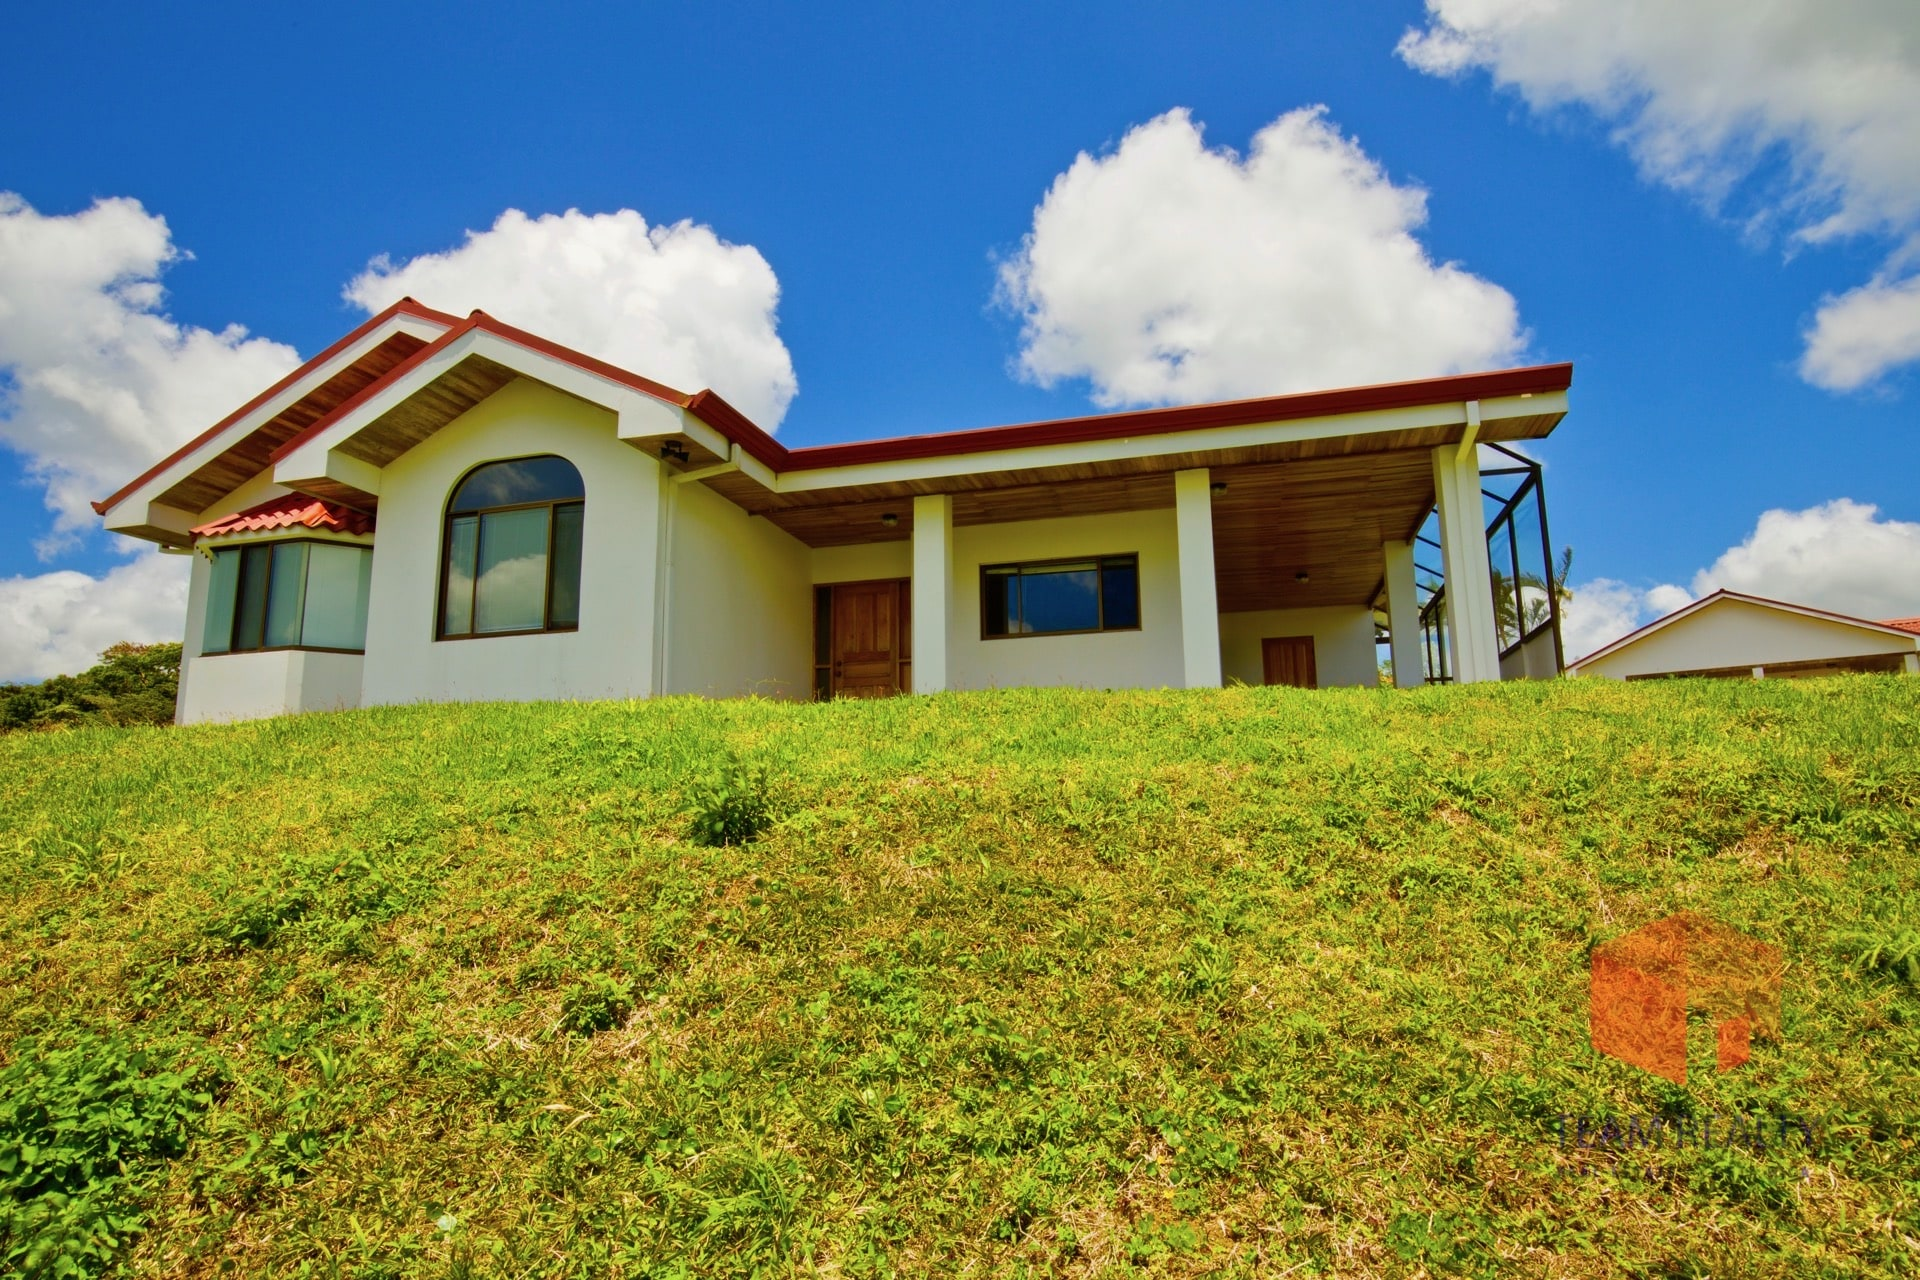 Gated Lake & Volcano view three bedroom home move in ready, fully furnished